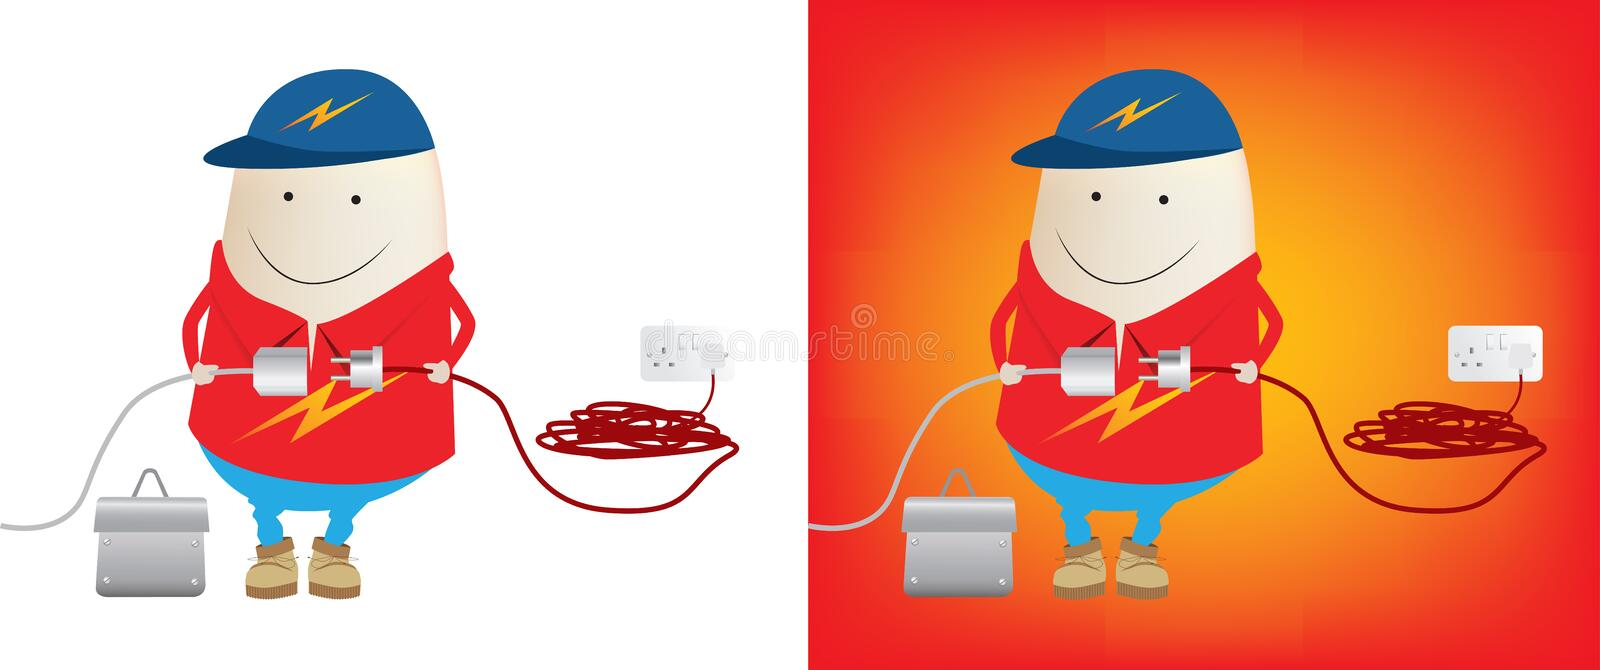 Electrician about to connect power royalty free illustration